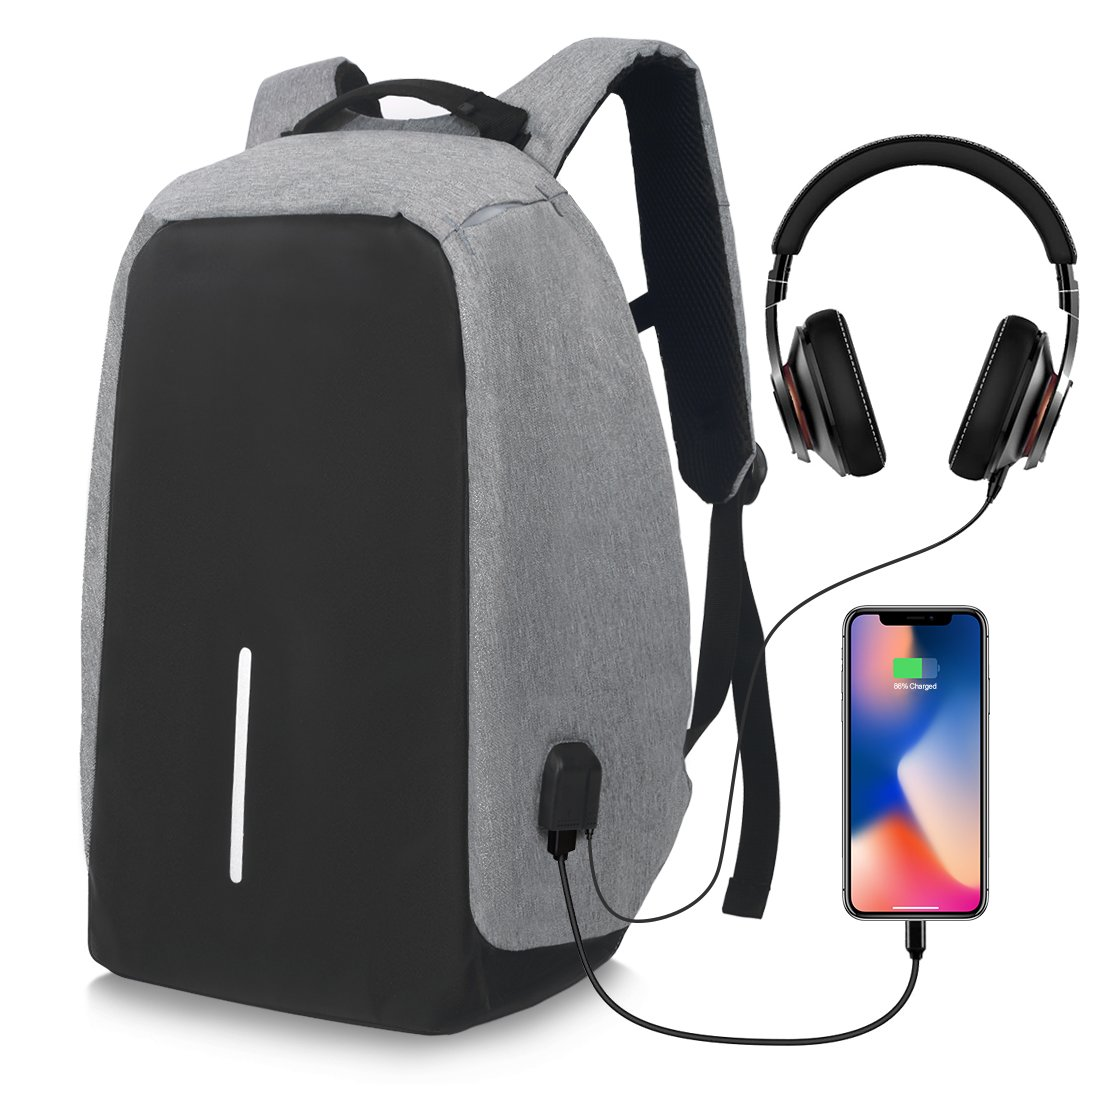 Business Laptop Backpack with USB Charging Port Headphone Port Fit 15.6/15/14 Inch Laptop Anti Theft Backpack Lightweight College Students Book Bag Water Resistant Computer Work Bag